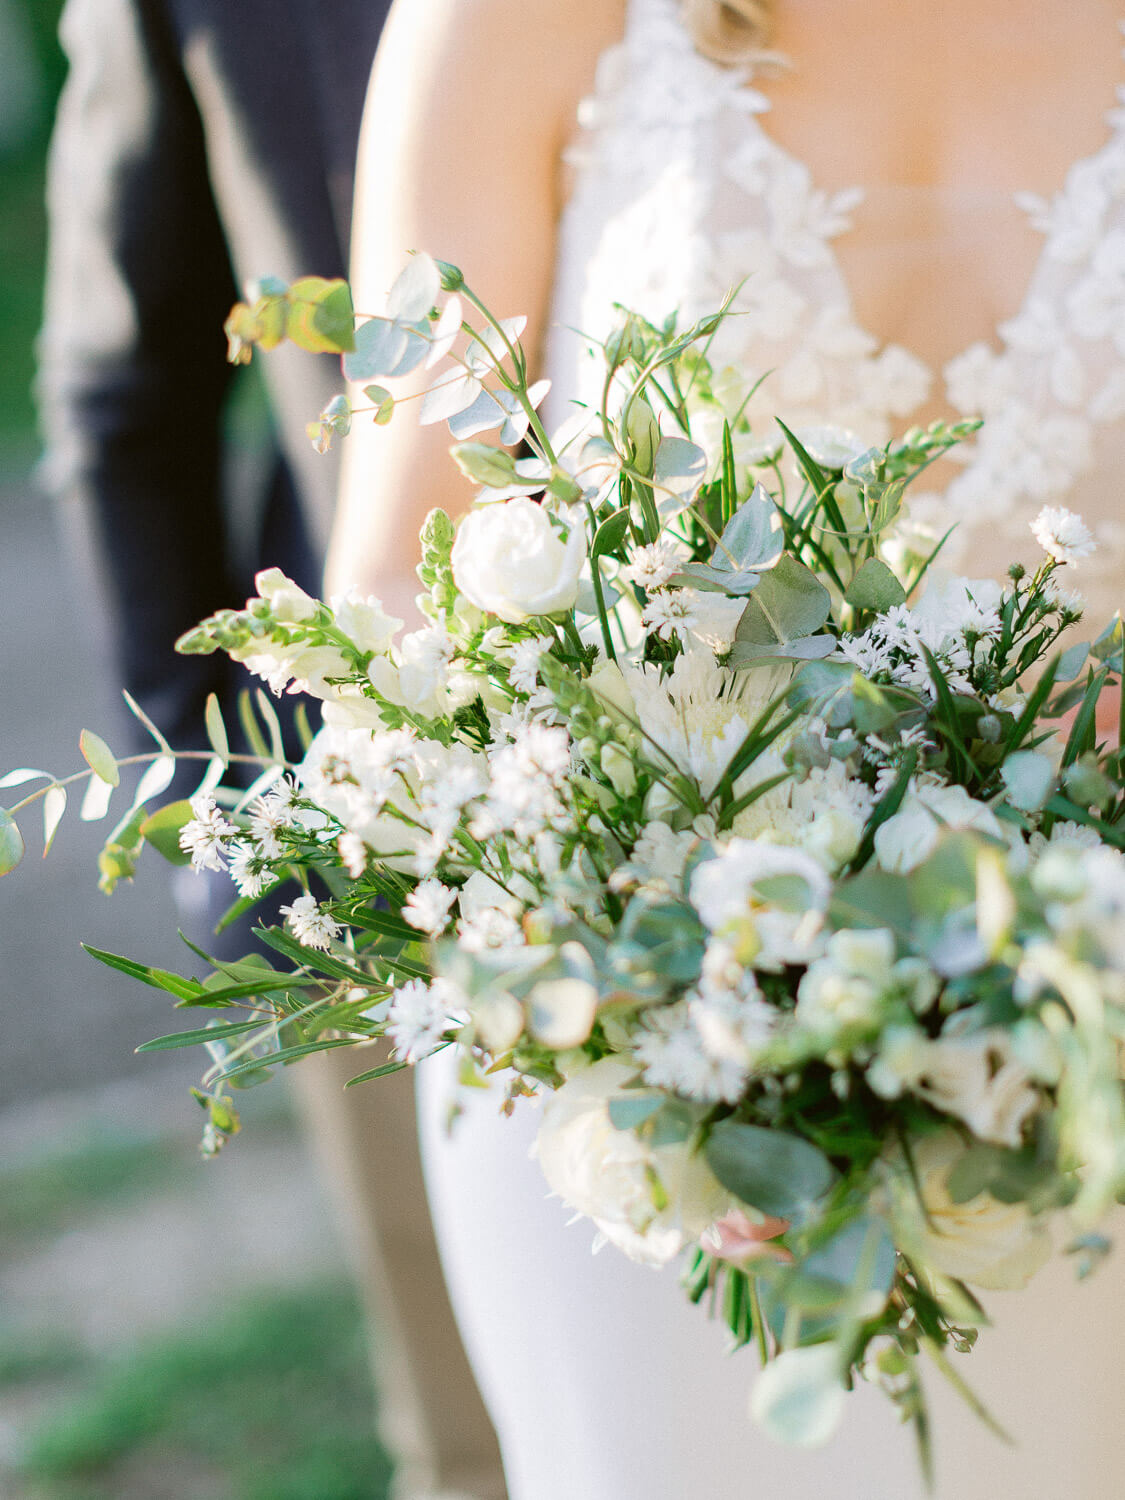 romantic bridal bouquet in white and green hues by Portugal Wedding Photographer